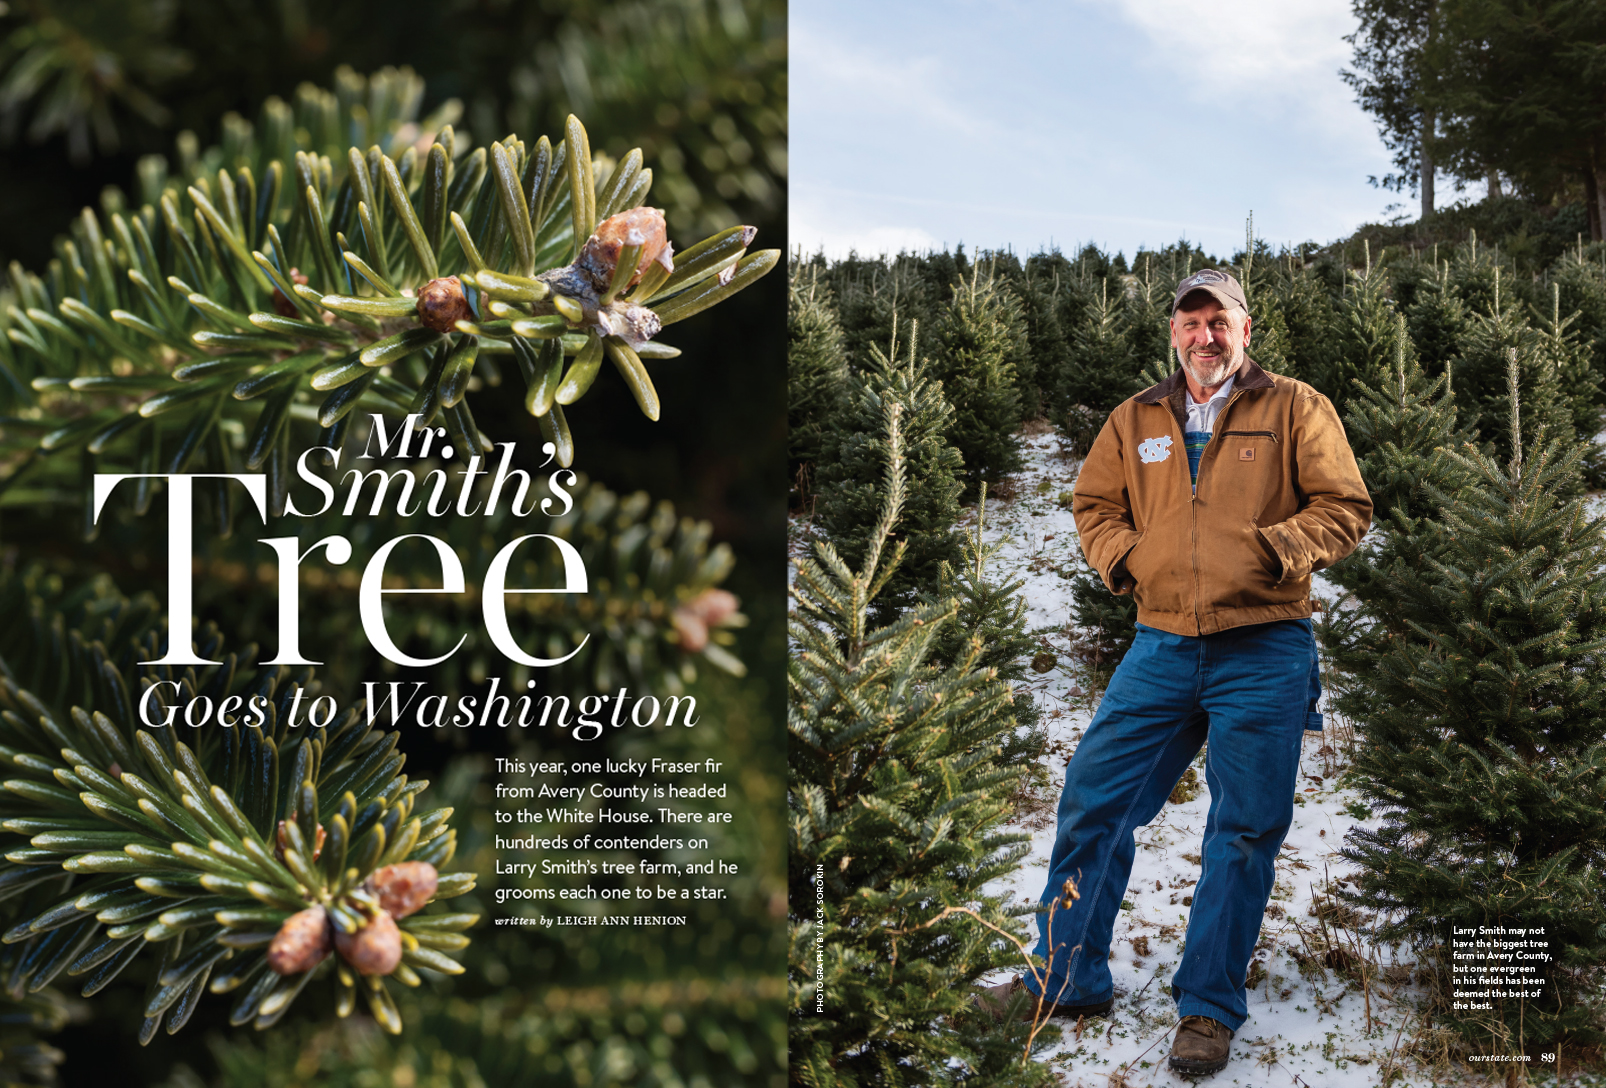 Our State Christmas Tree Spruce Pine Larry Farm Winter Magazine Jack Sorokin Photographer Photography Western North Carolina Asheville White House DC